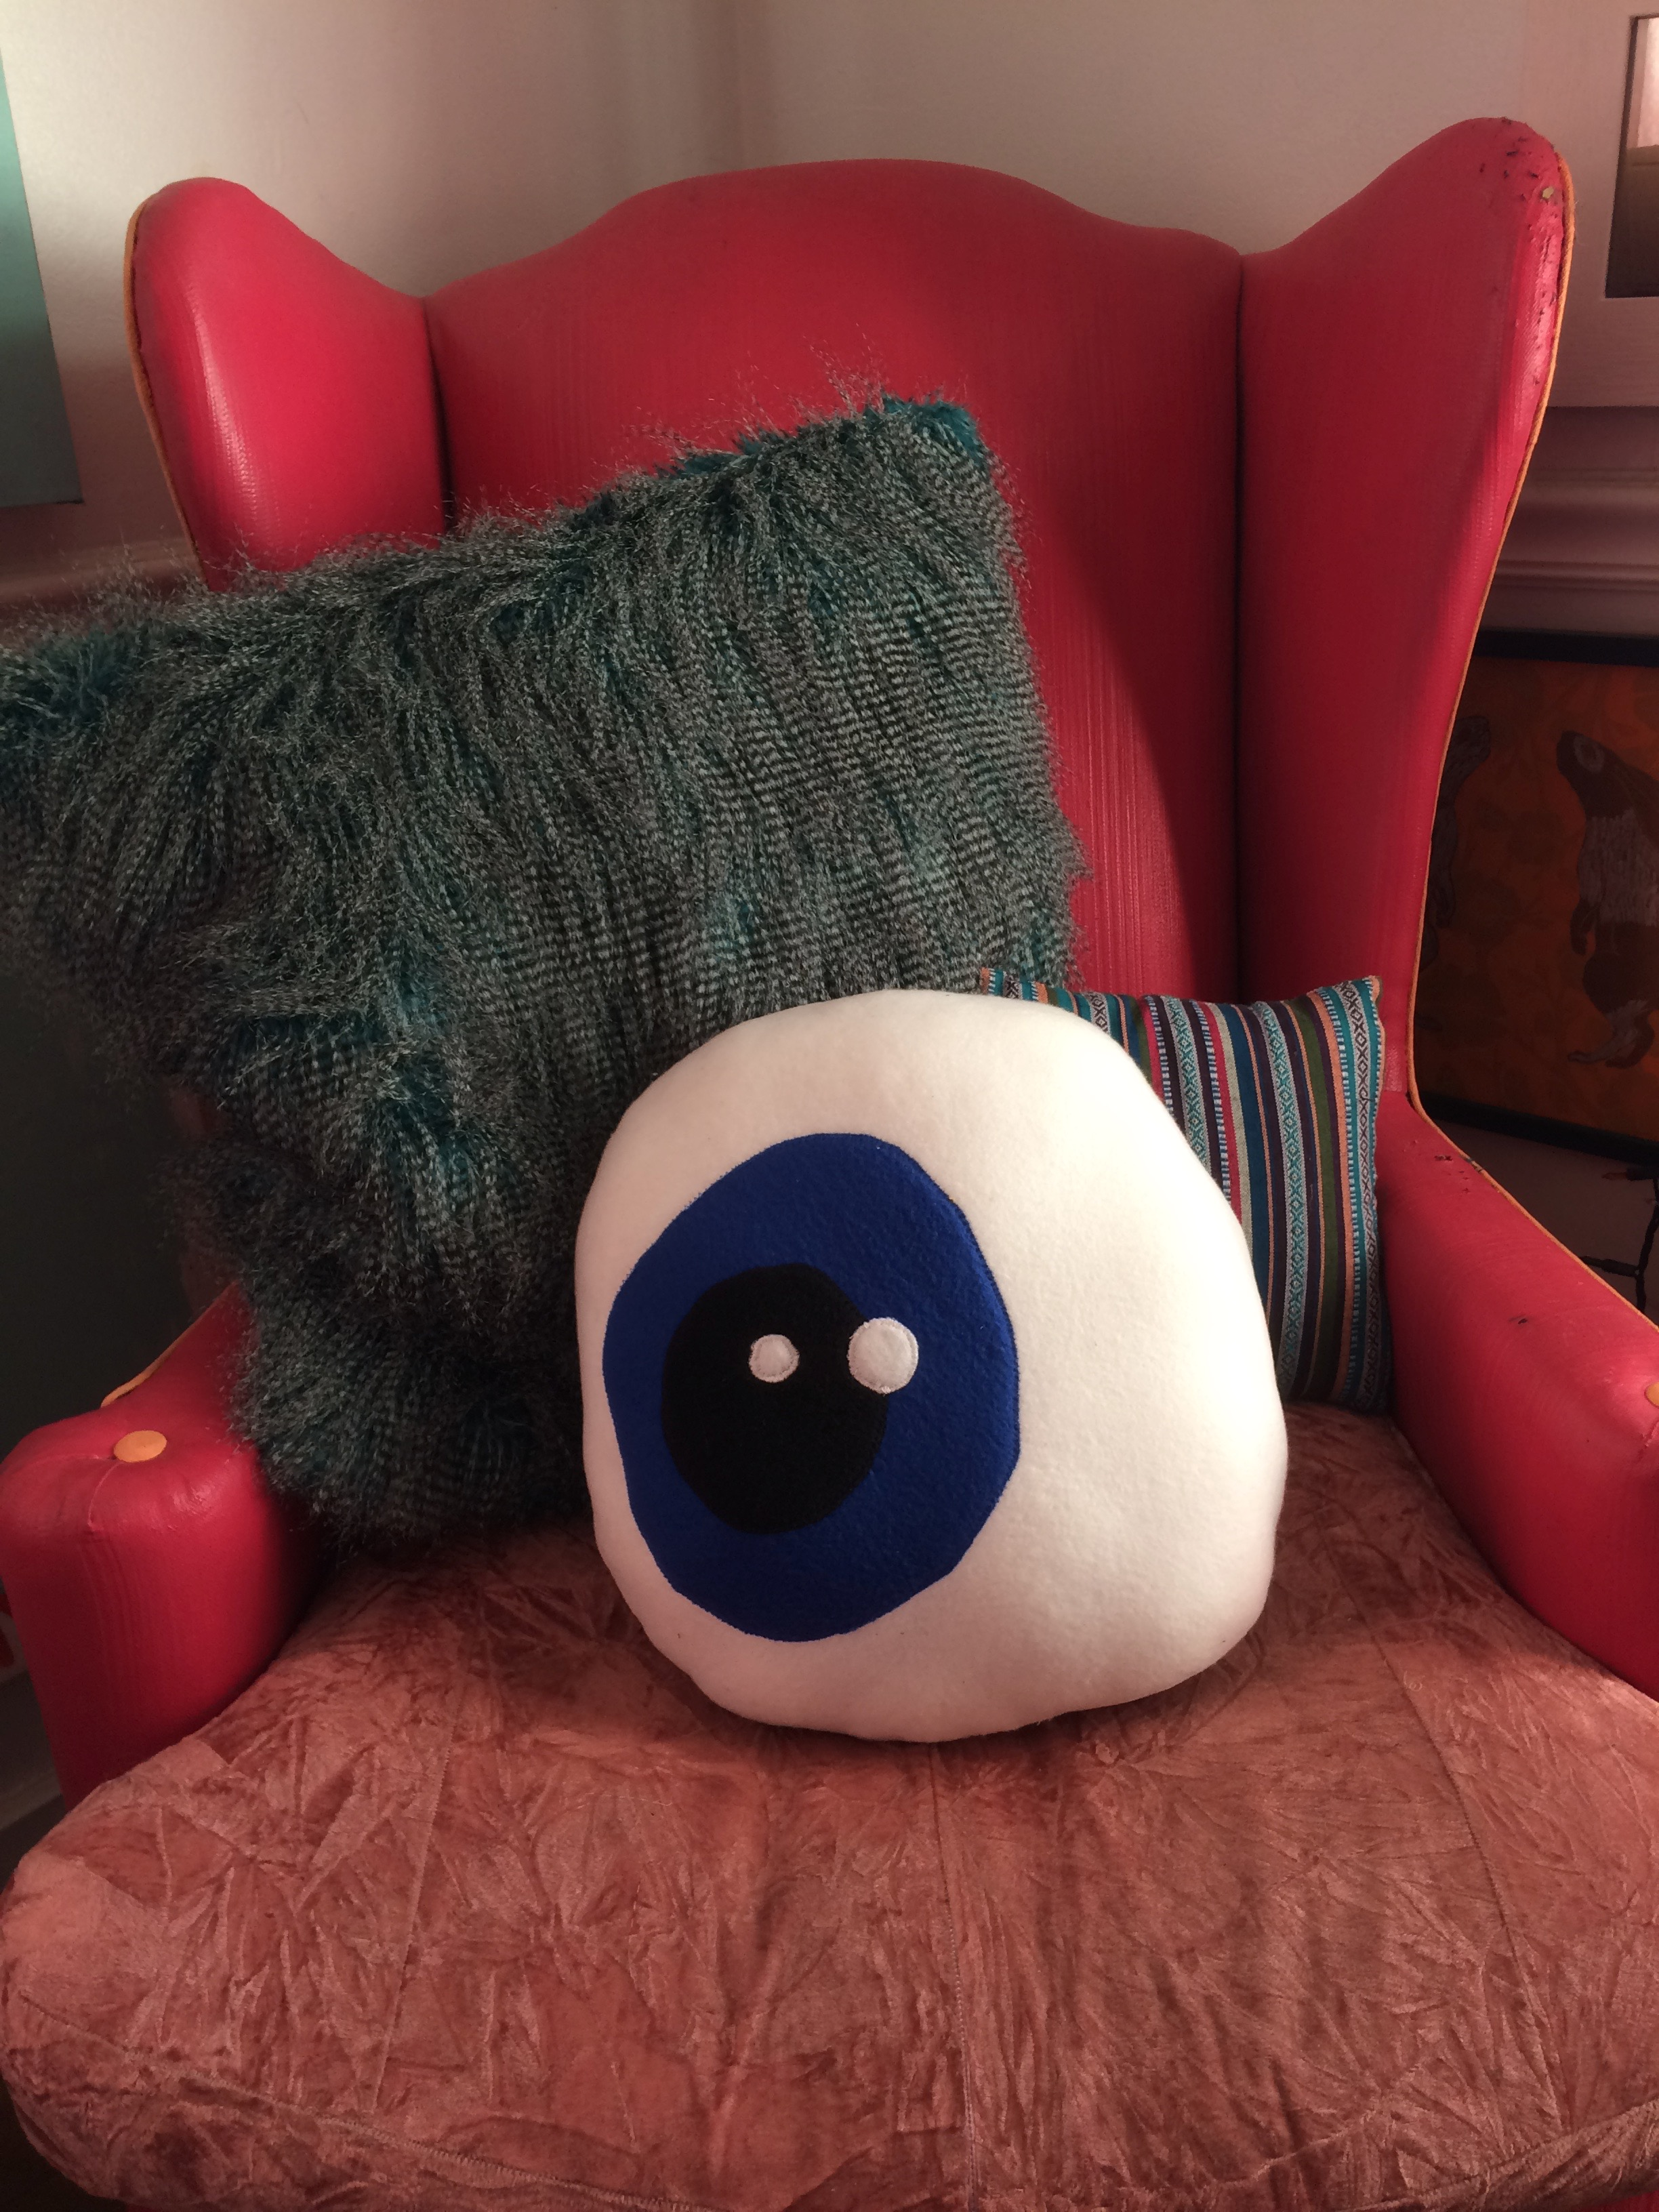 Eyeball Pillo & Custom Pillows